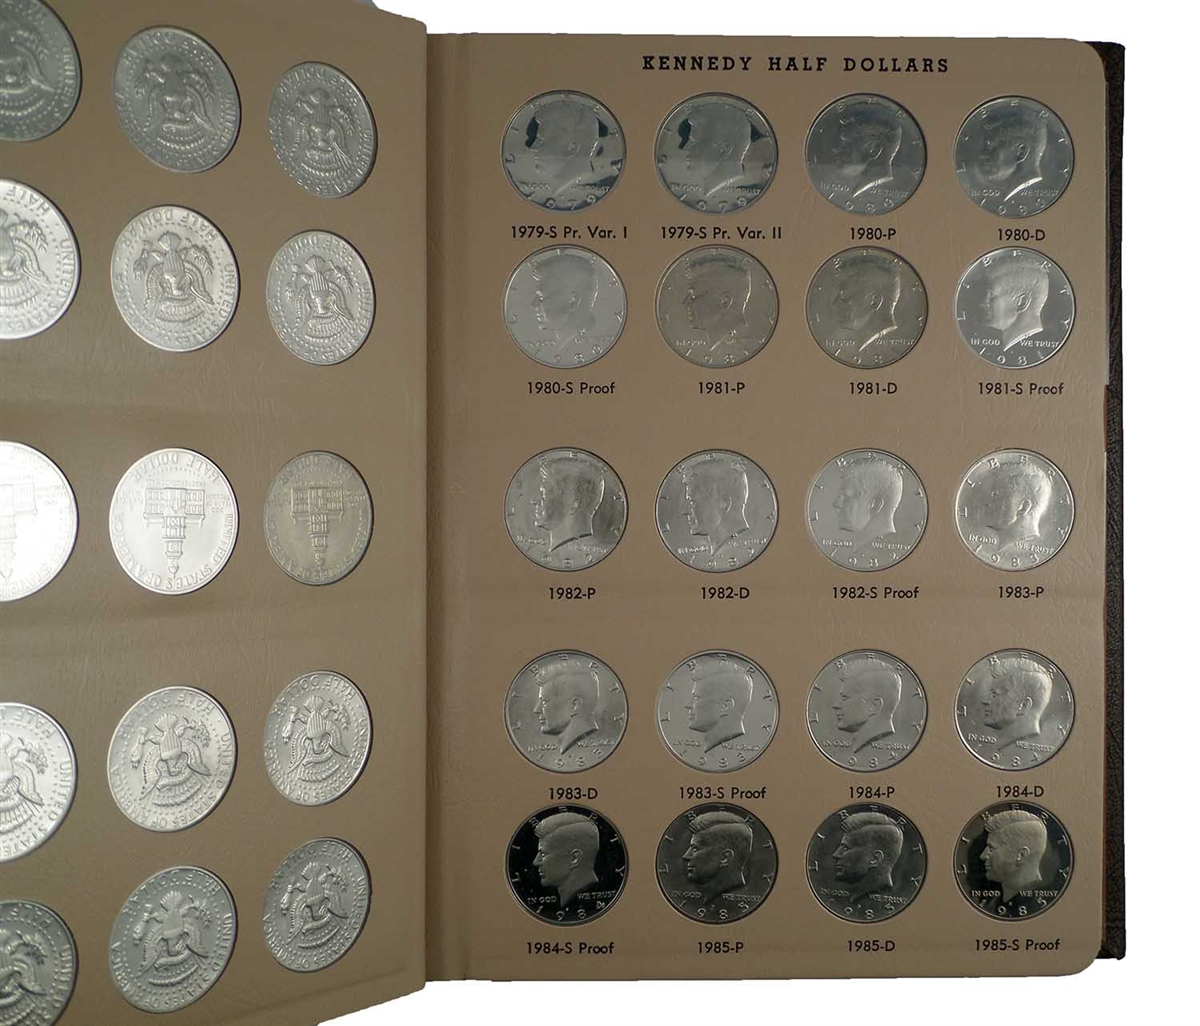 Dansco Coin Album 8166 Kennedy Half Dollars With Proofs 1964 to 2012